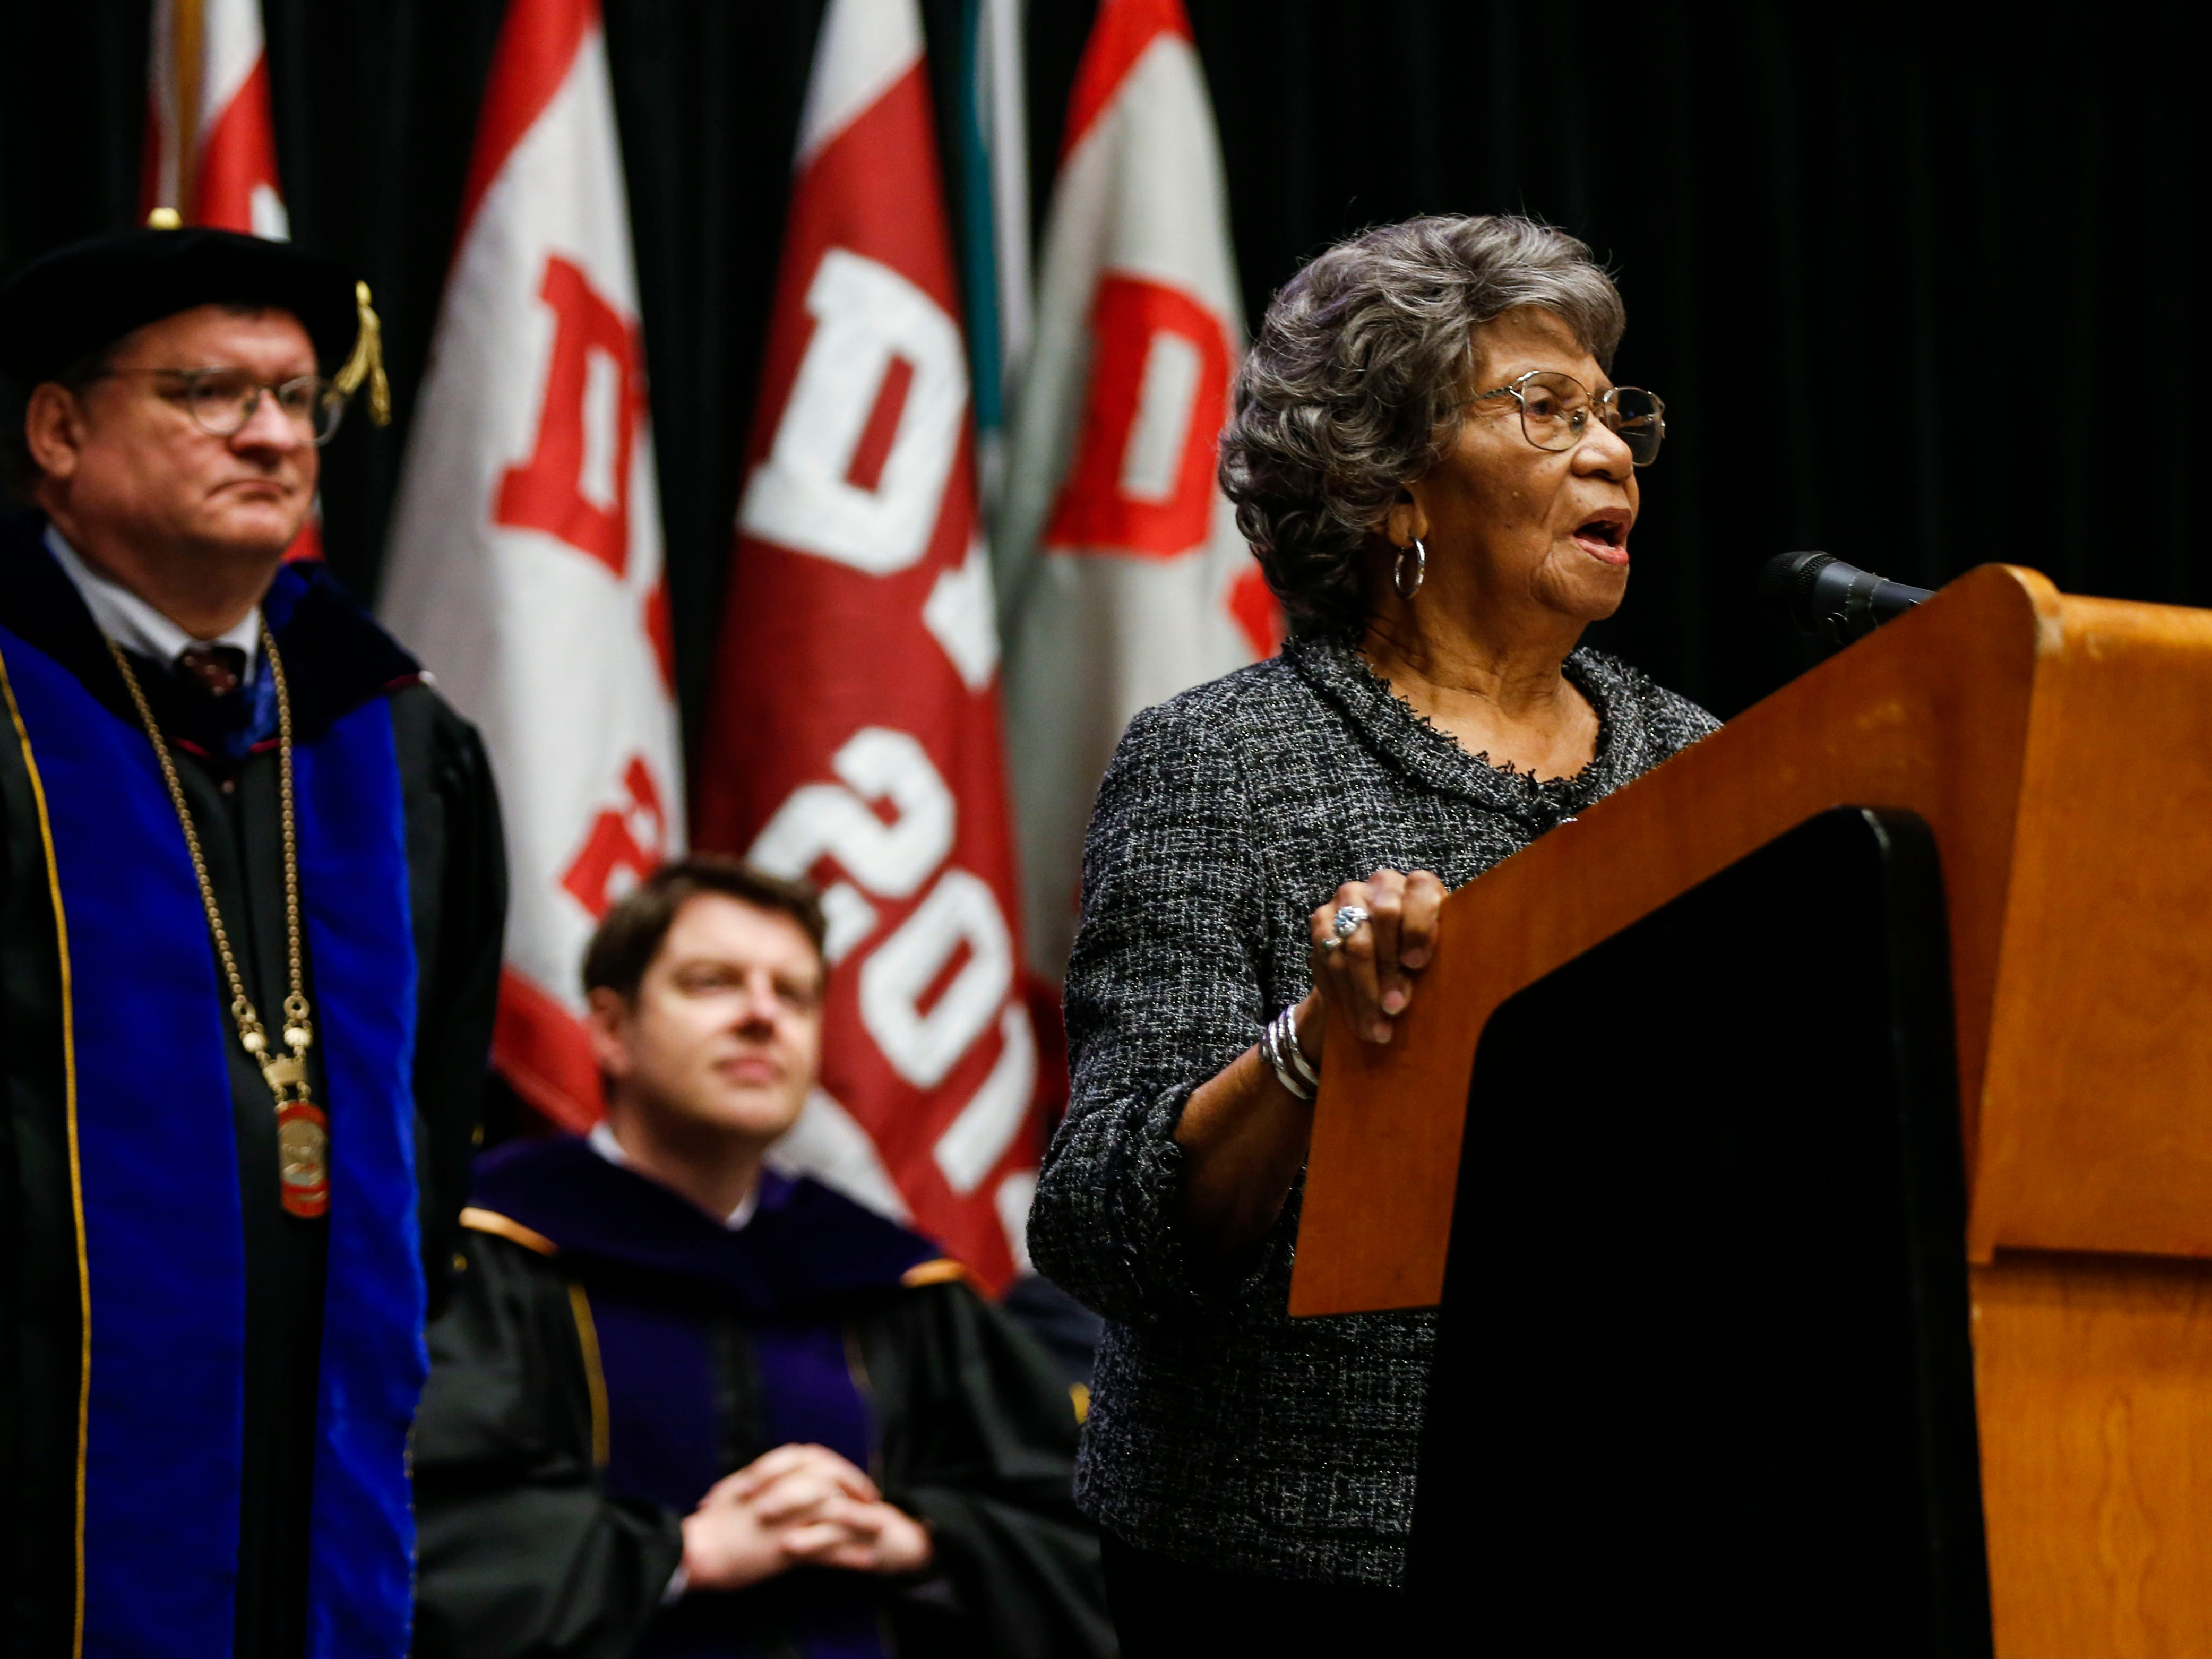 Leola Montgomery Brown speaks to Drury University graduates during the Drury University Commencement Ceremony at the O'Reilly Family Event Center on Saturday, May 11, 2019.